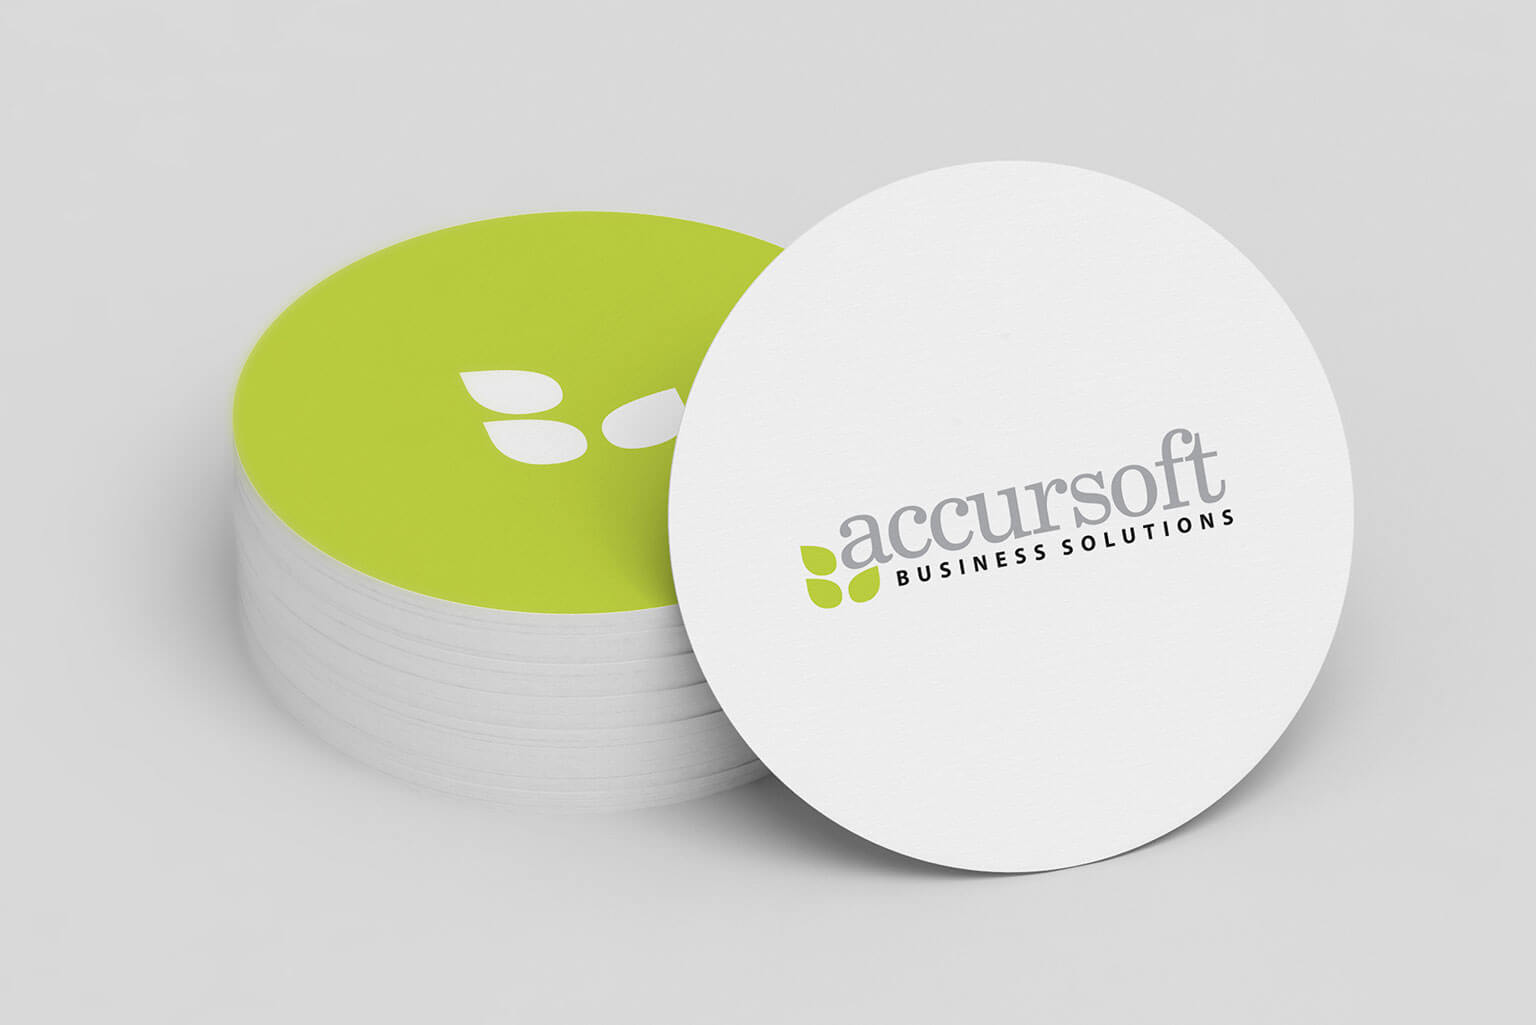 Accursoft, visual identity, logo and stationery items for a USA based software company